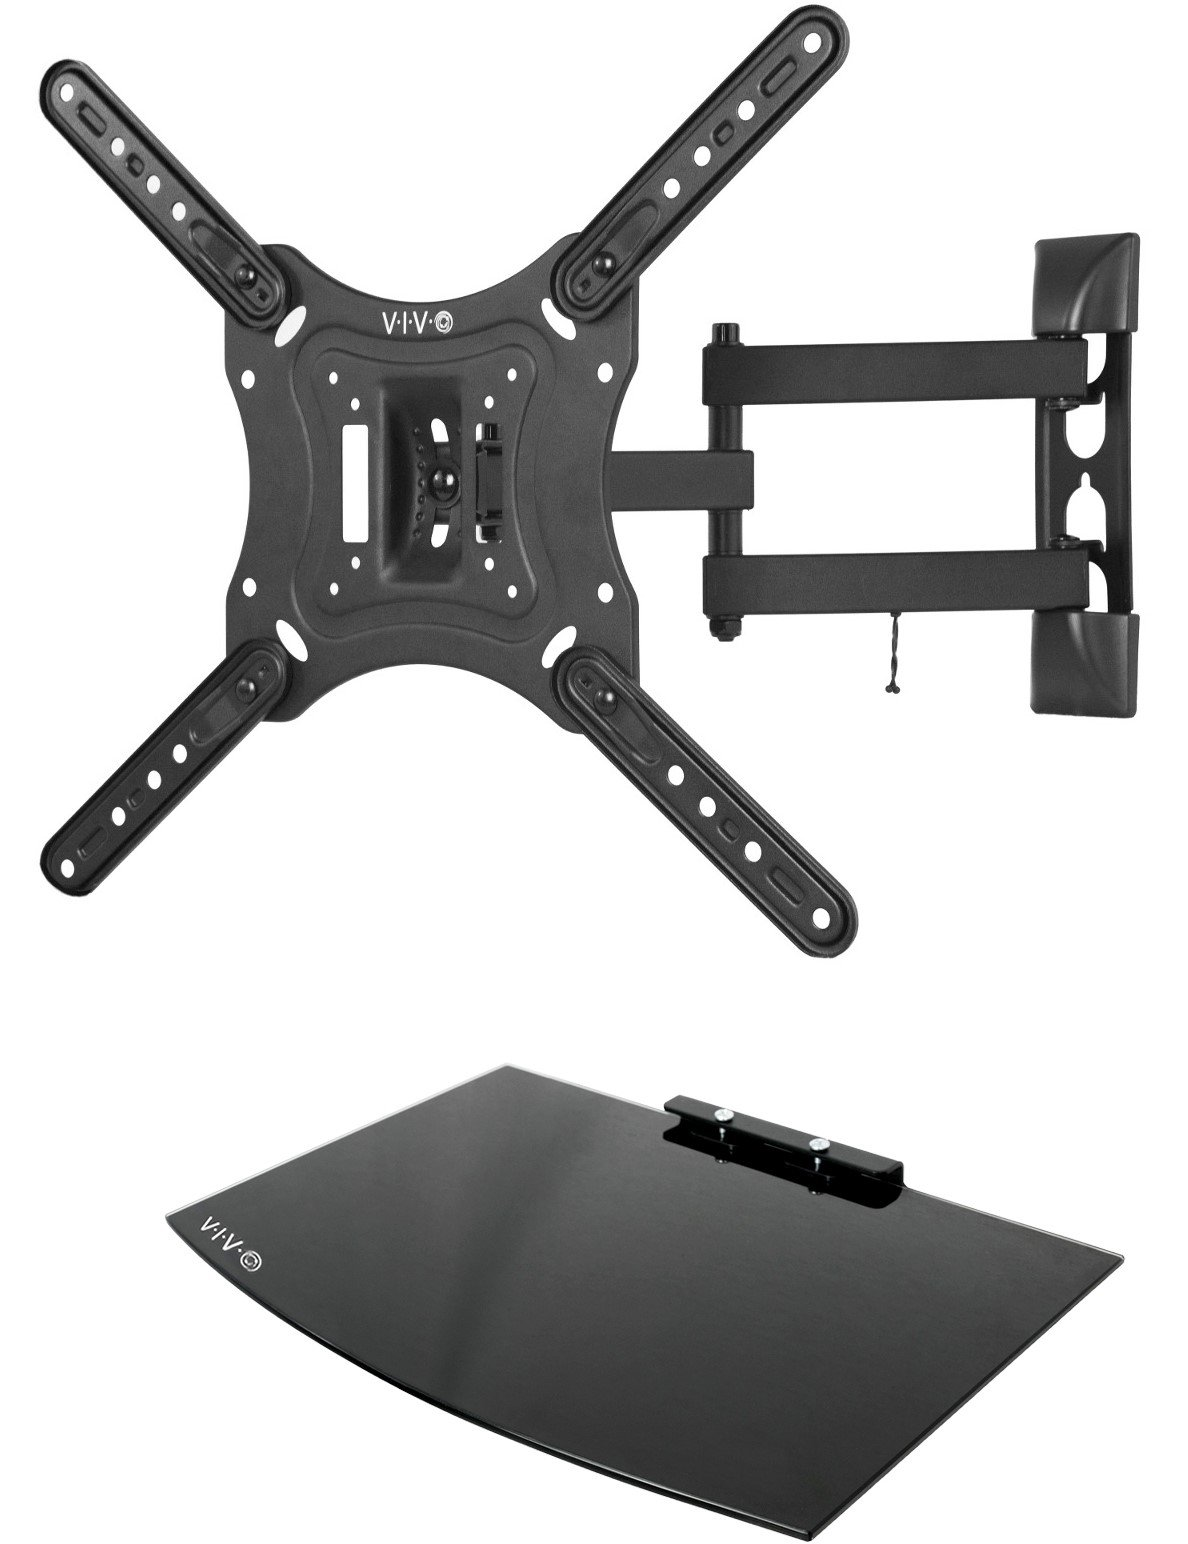 VIVO Adjustable Entertainment Floating Mount VWSF1